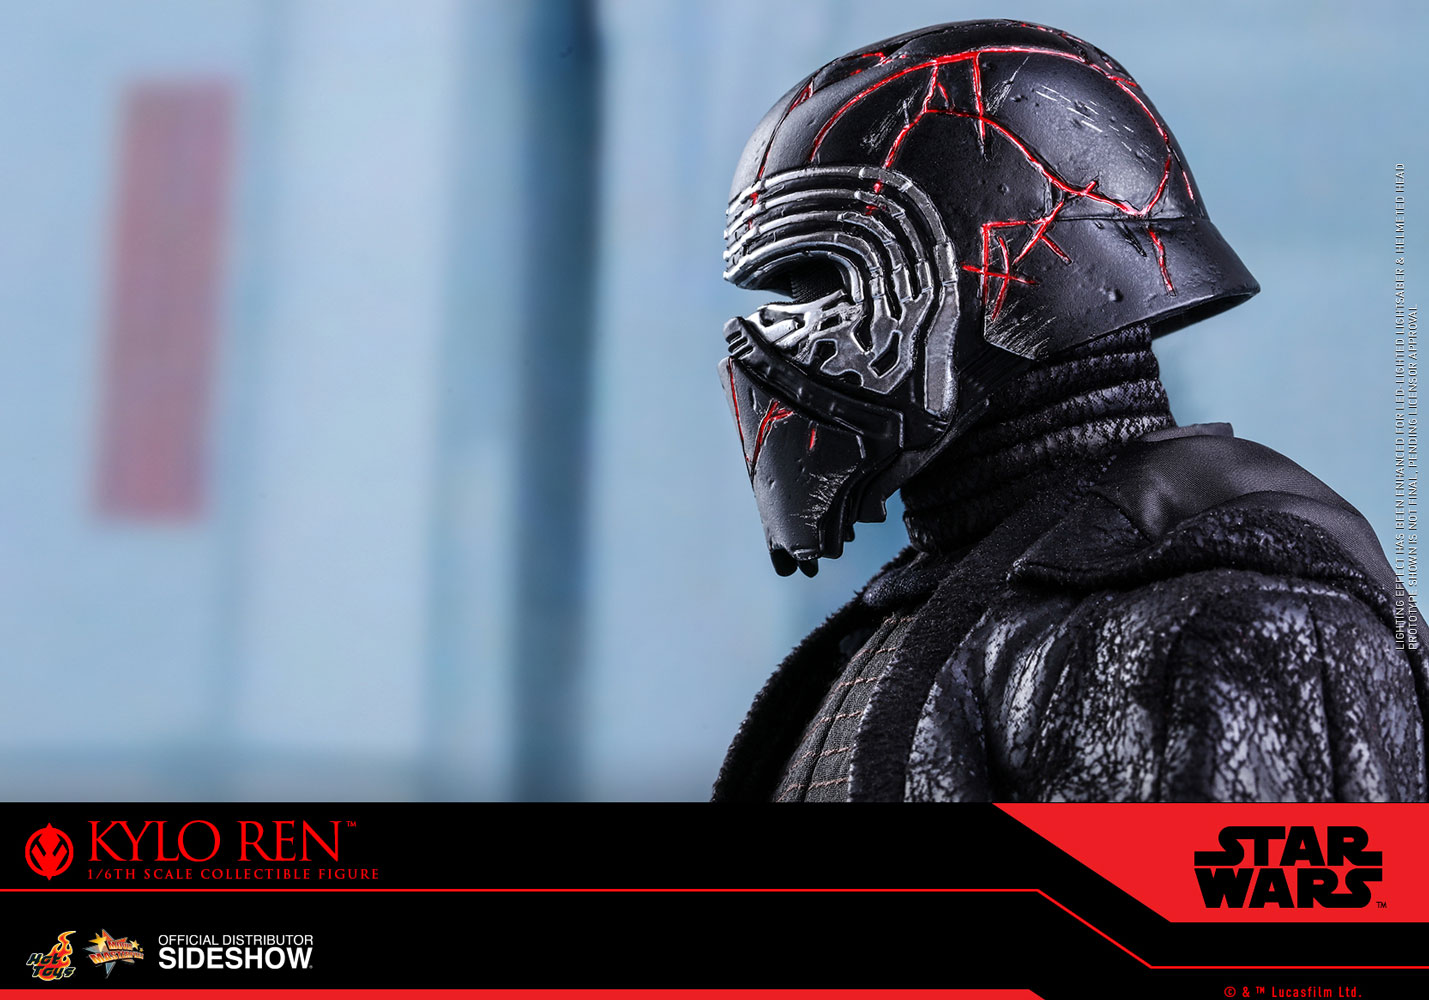 Kylo Ren Sixth Scale Figure By Hot Toys Sideshow Collectibles